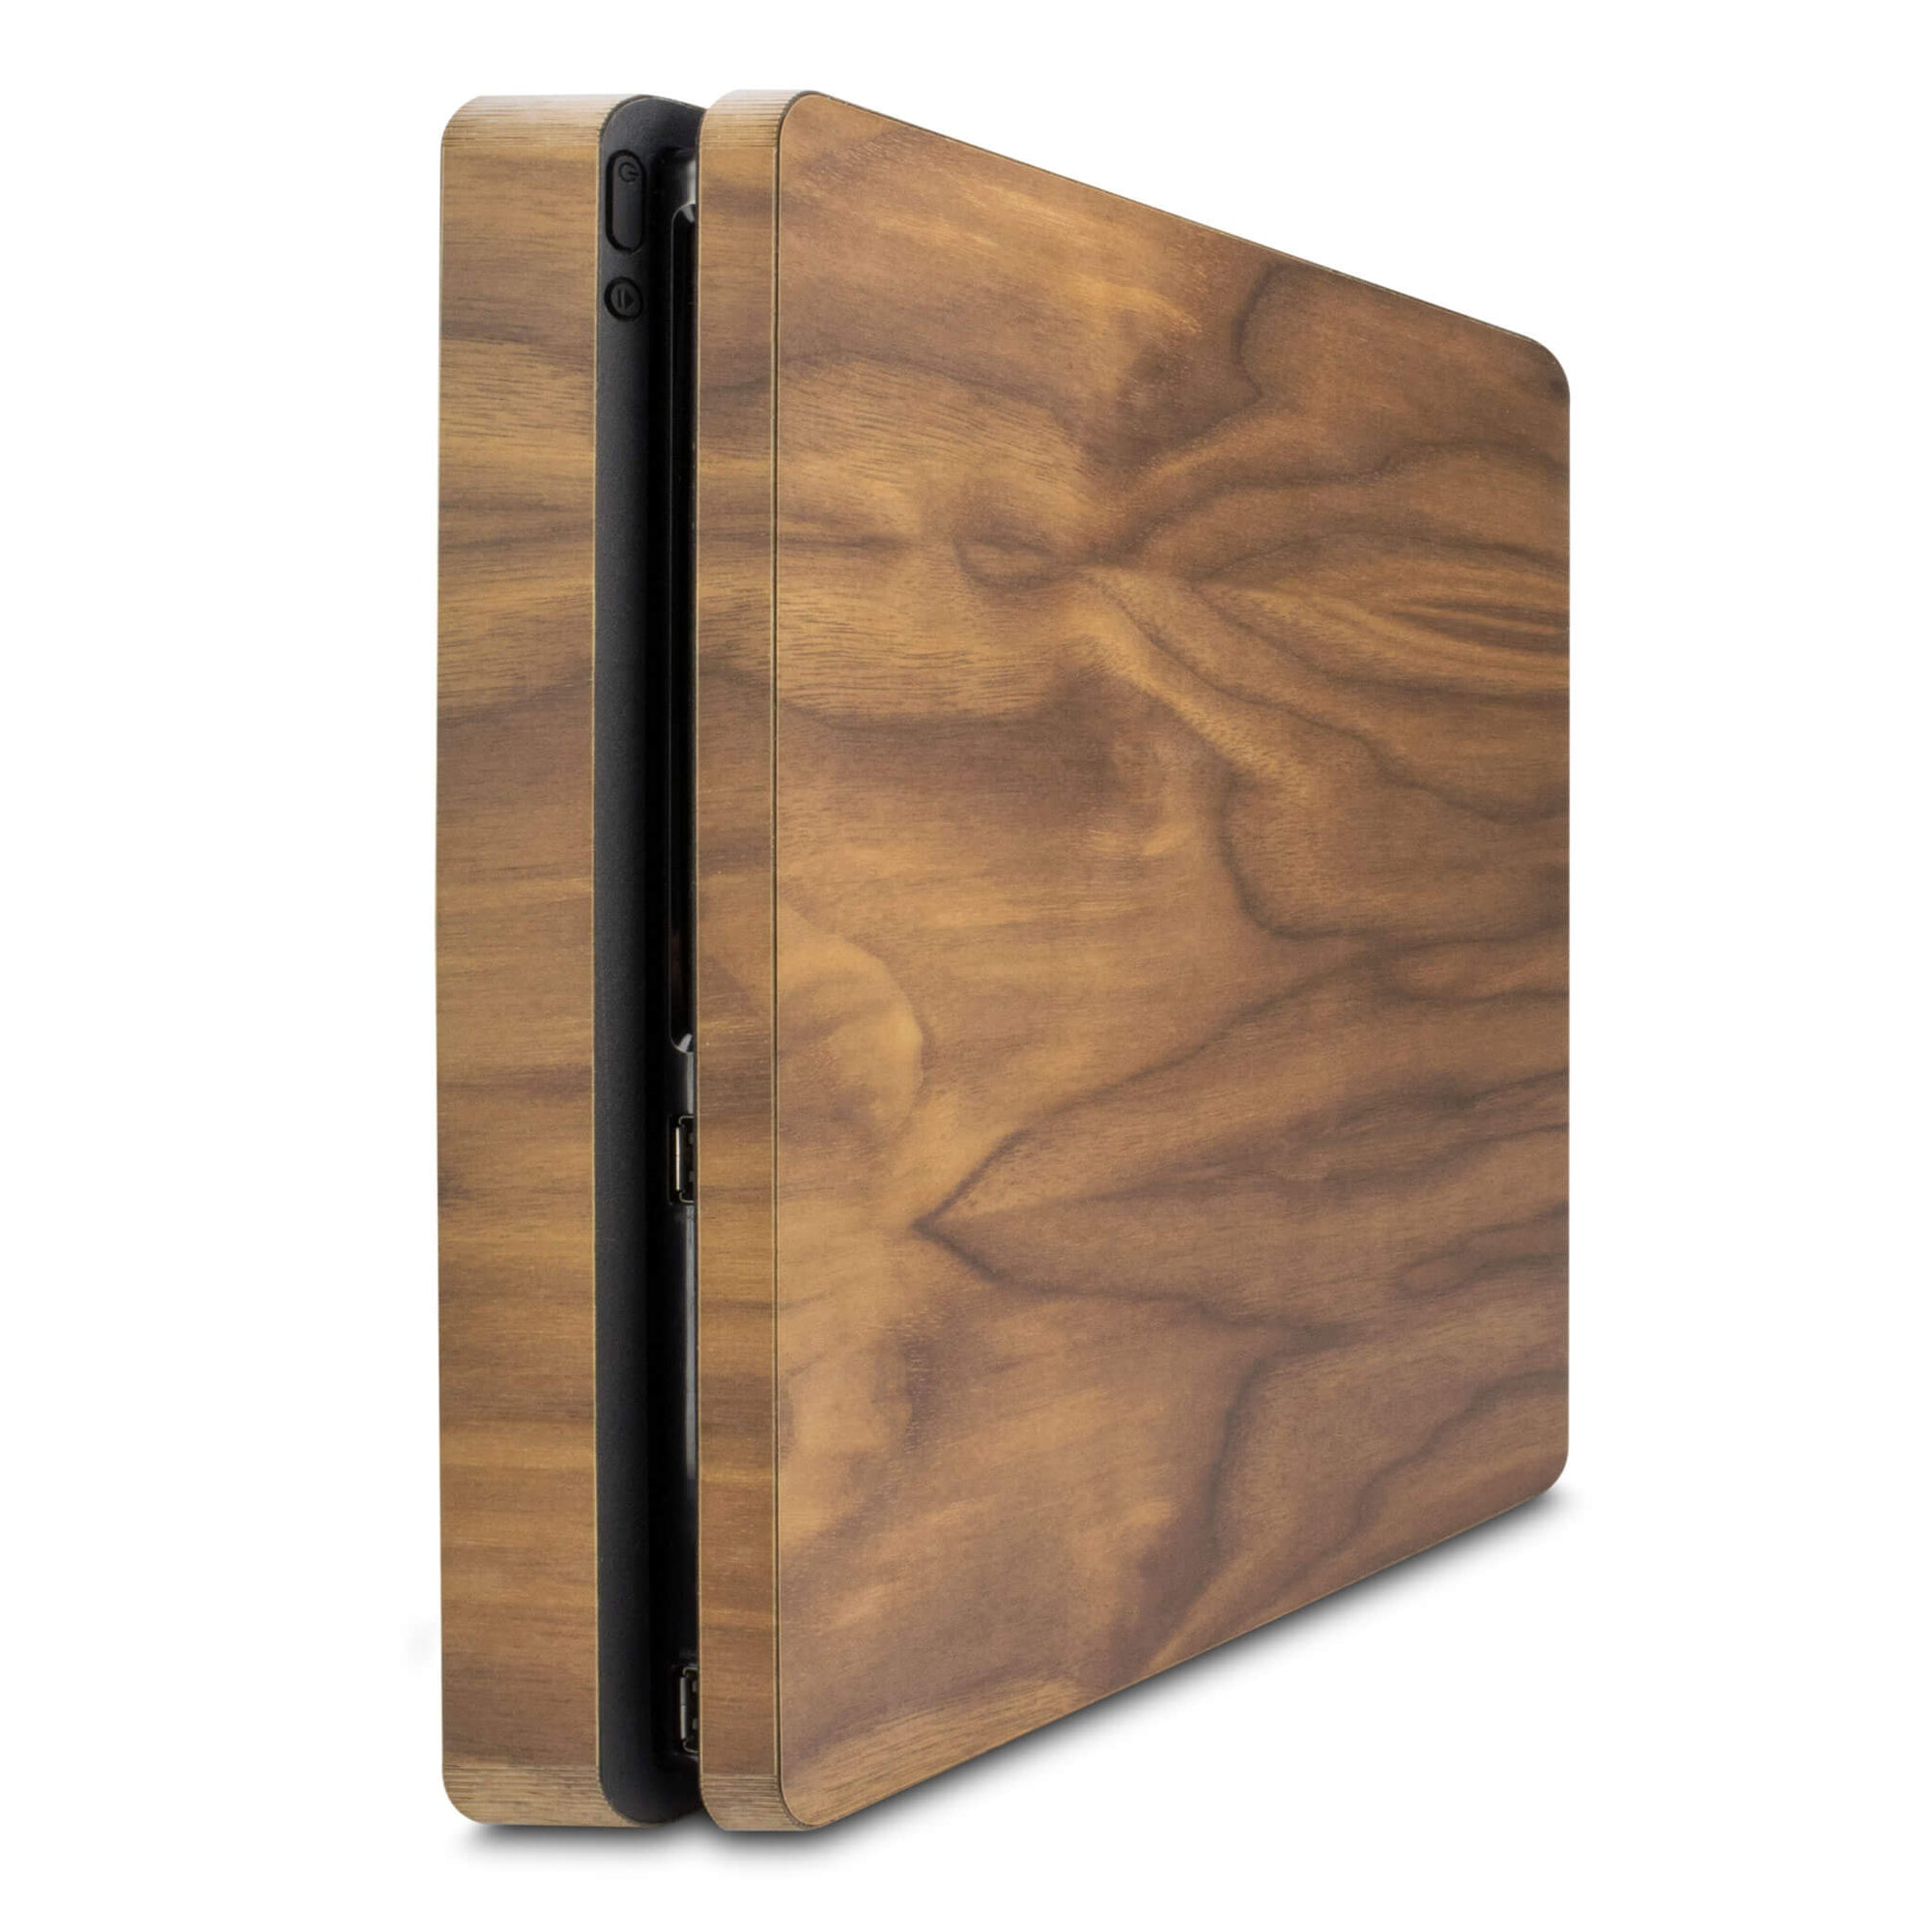 Playstation 4 Slim Walnut Wood Cover